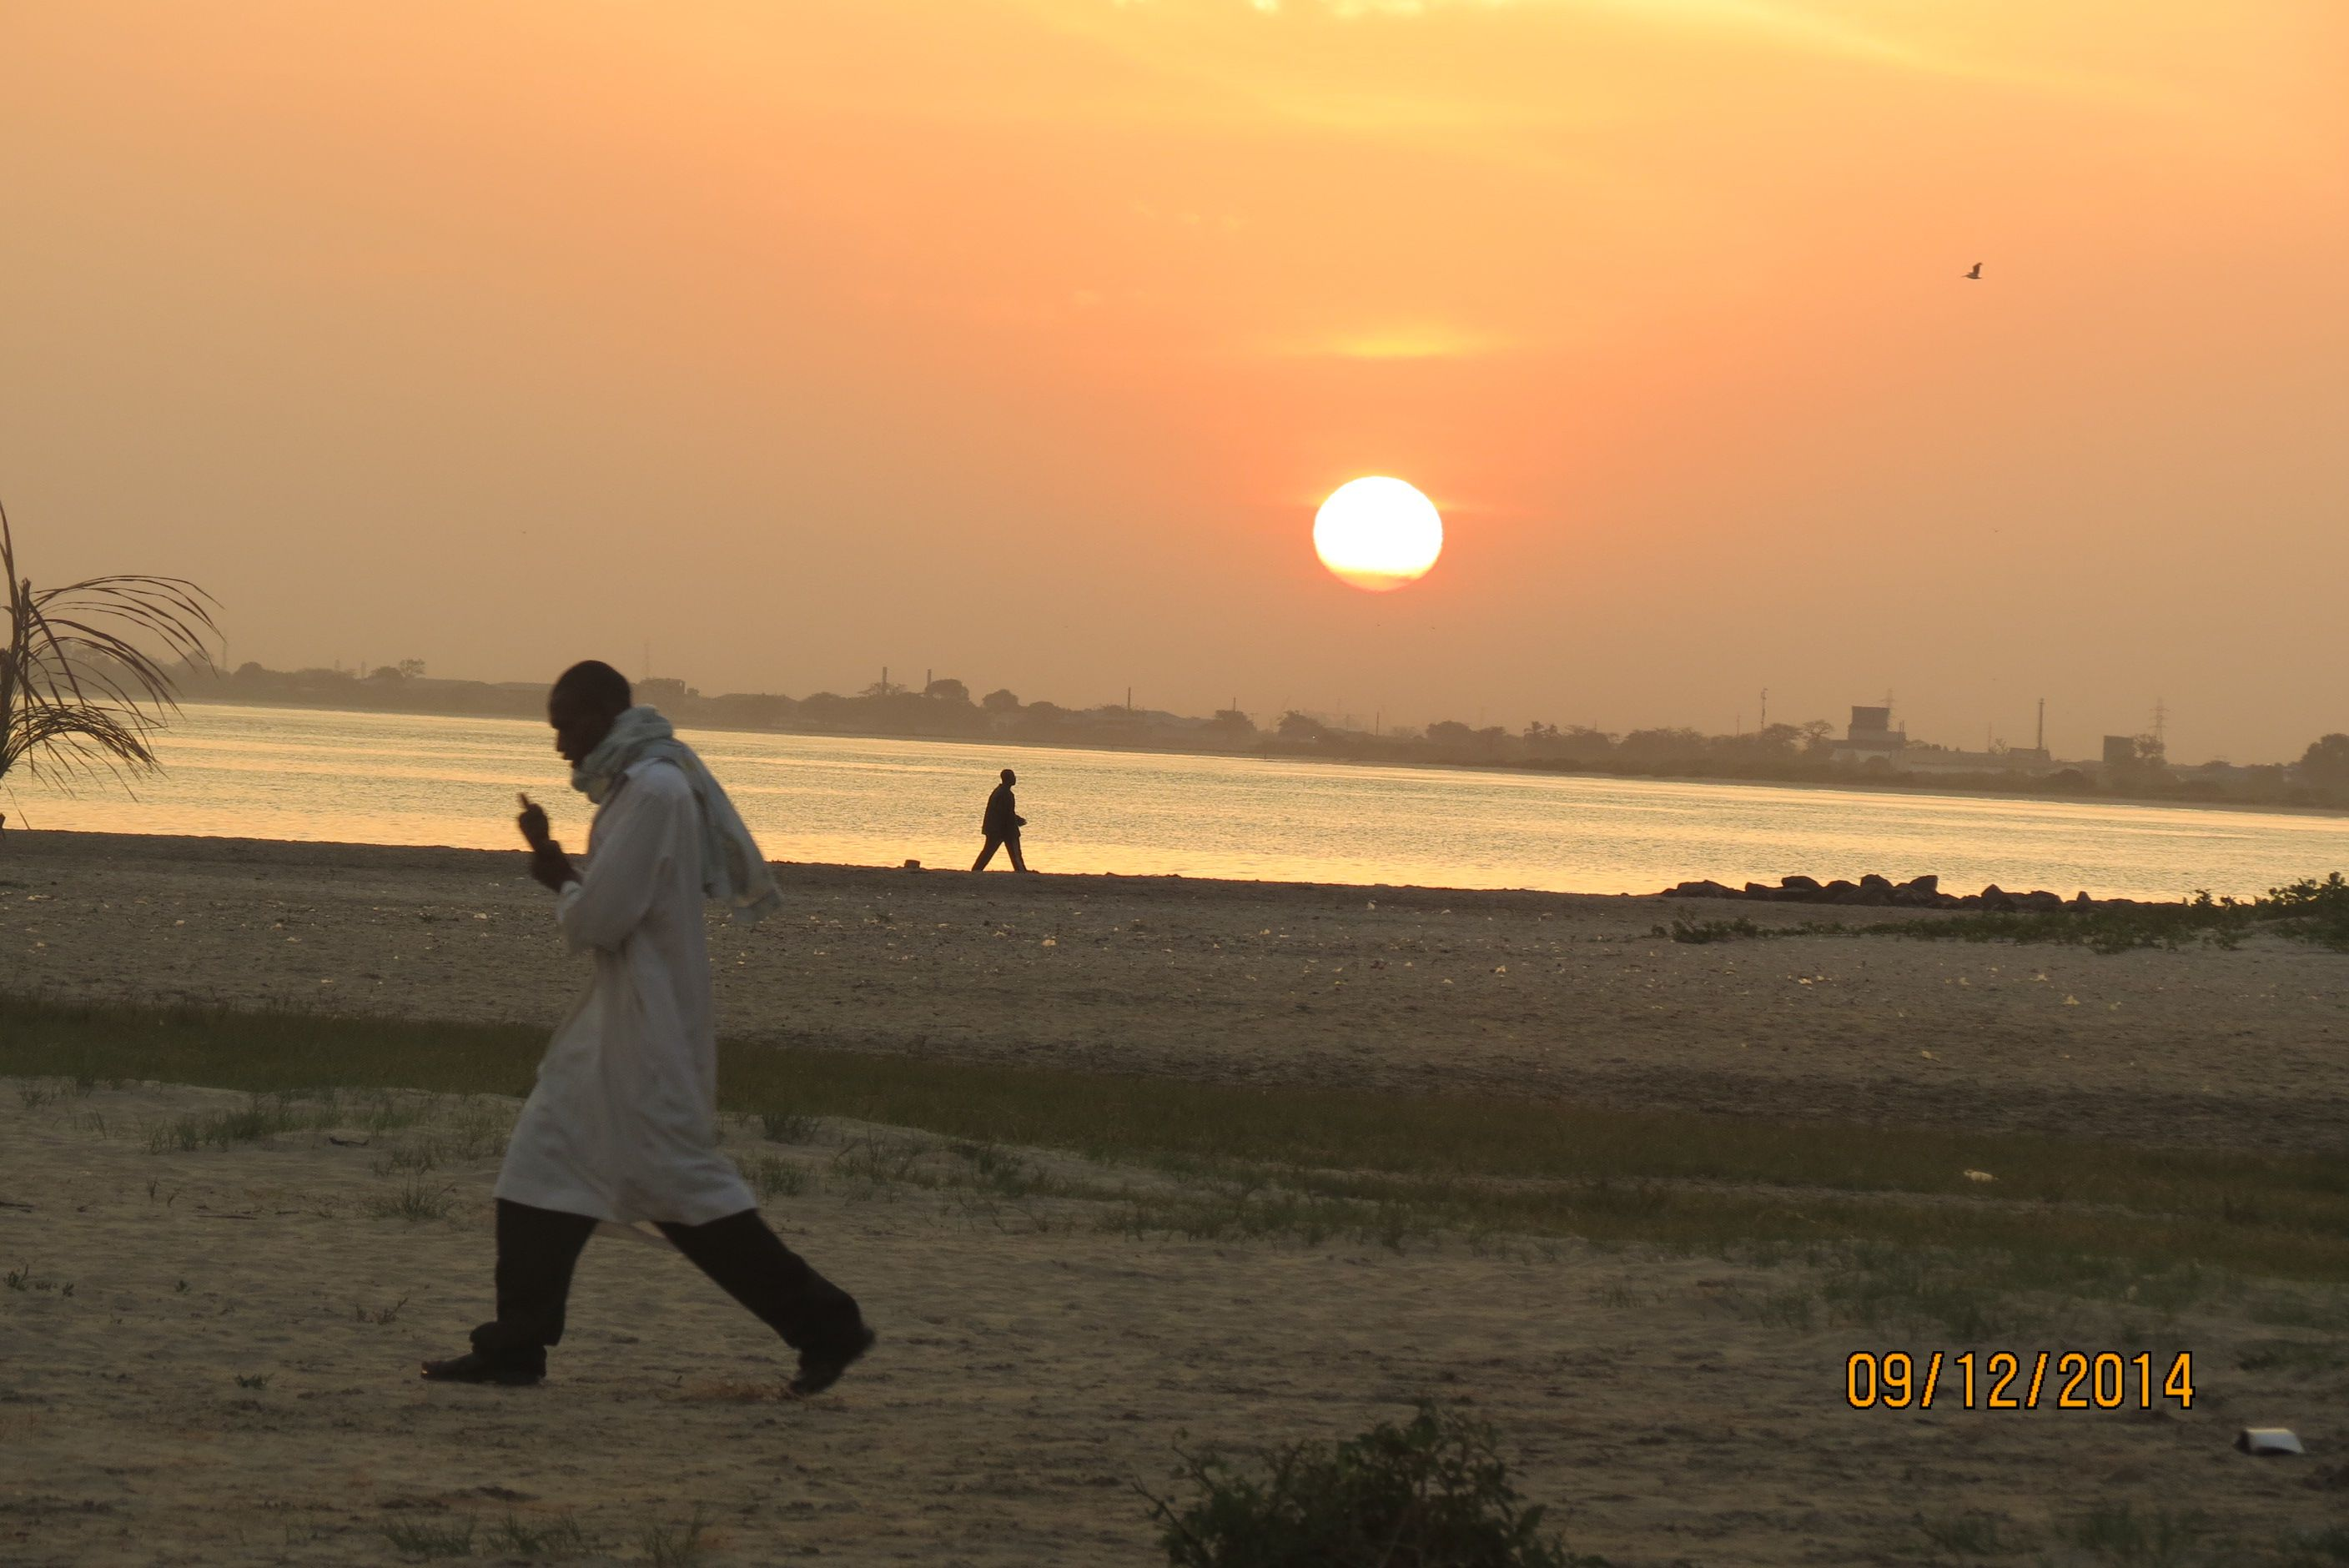 Sunrise fellowships in Banjul, The Gambia